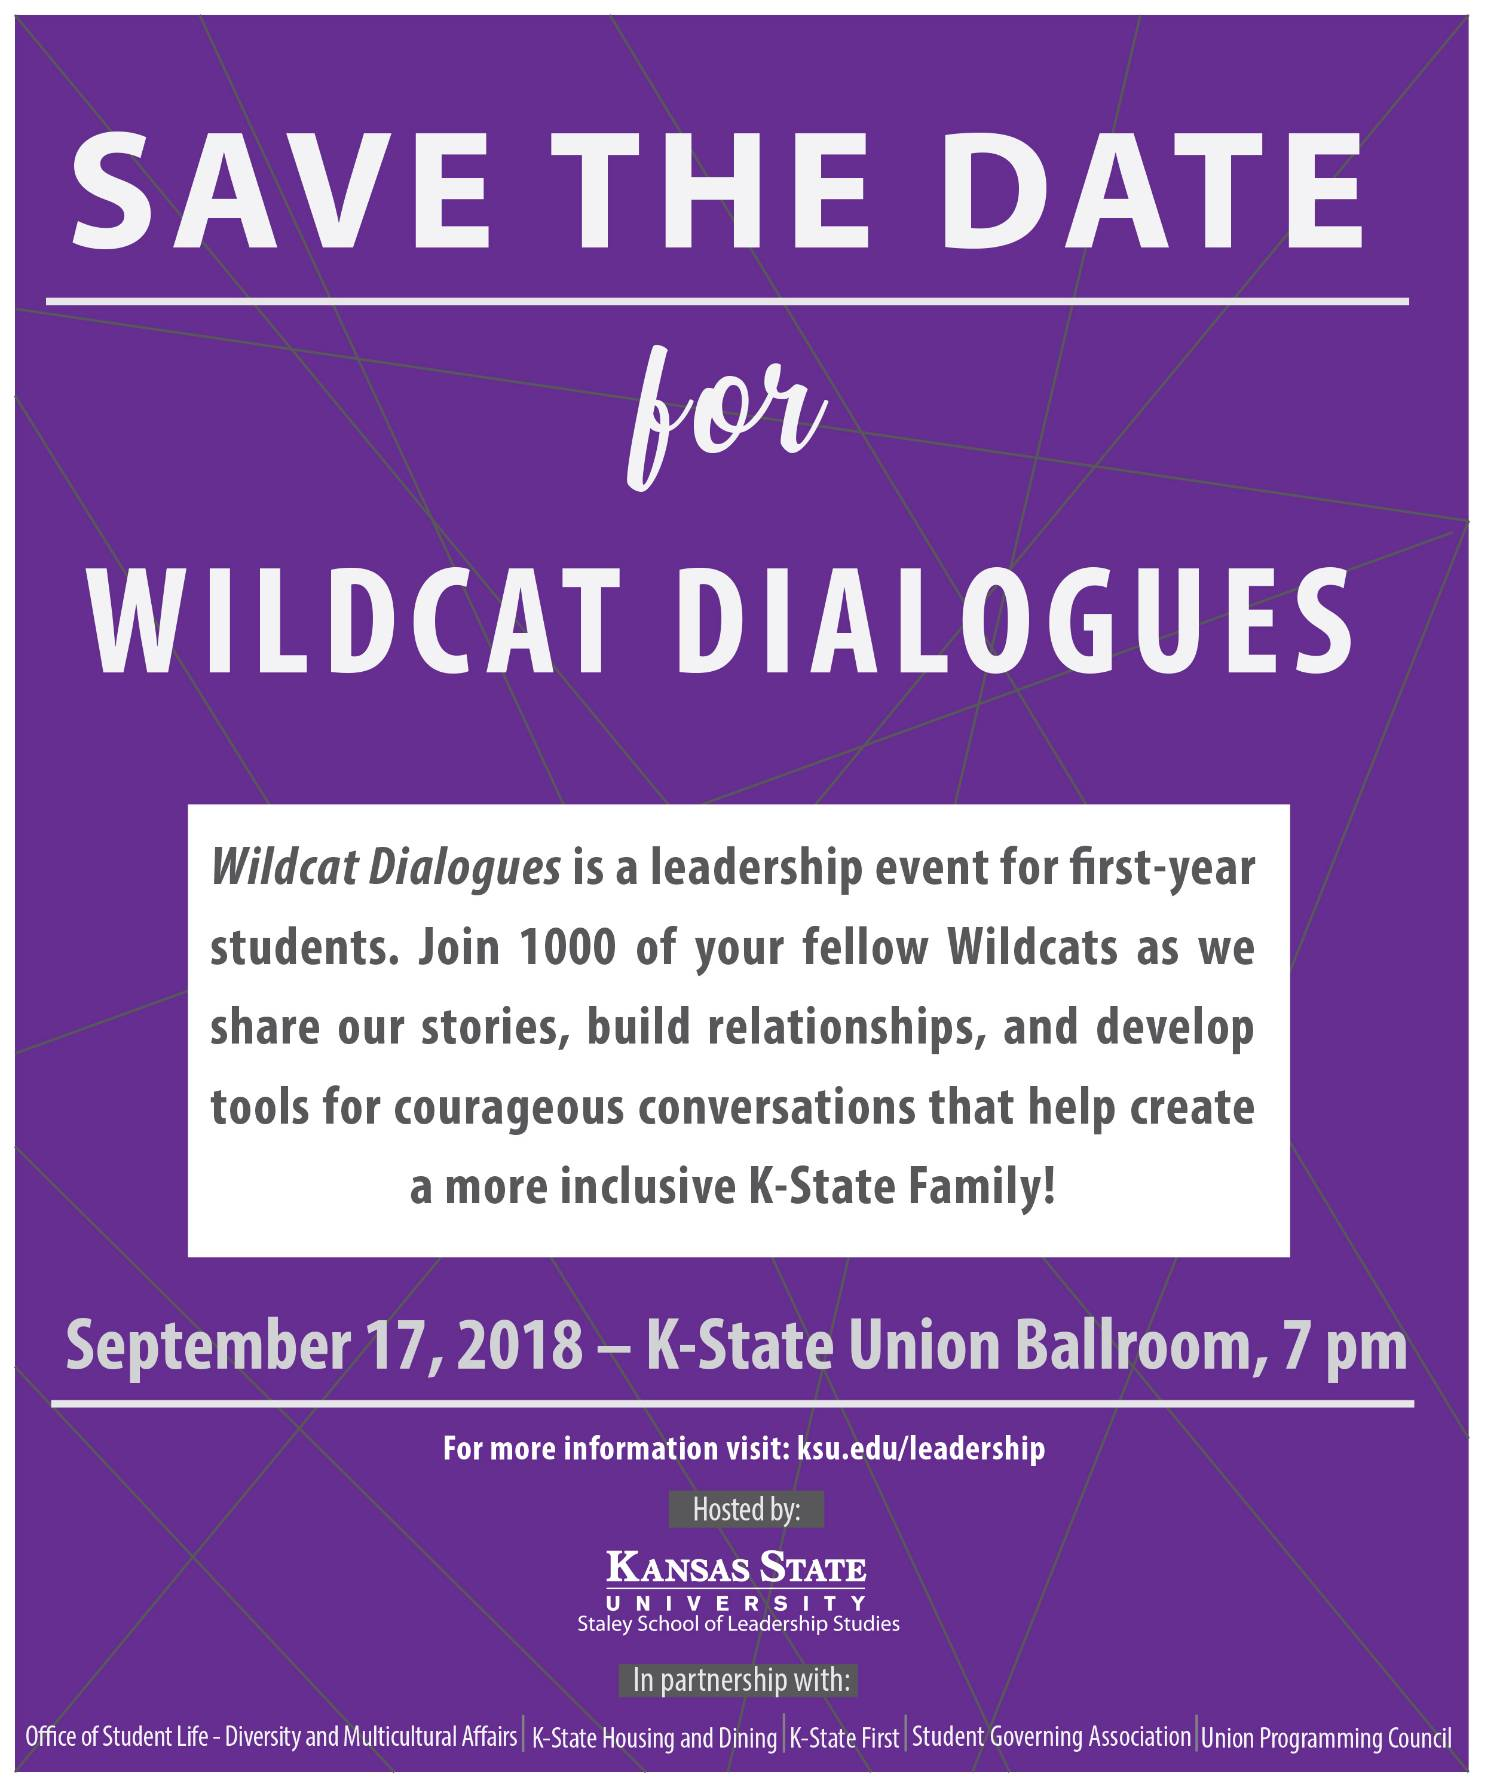 Wildcat Dialogues Save the Date Flyer